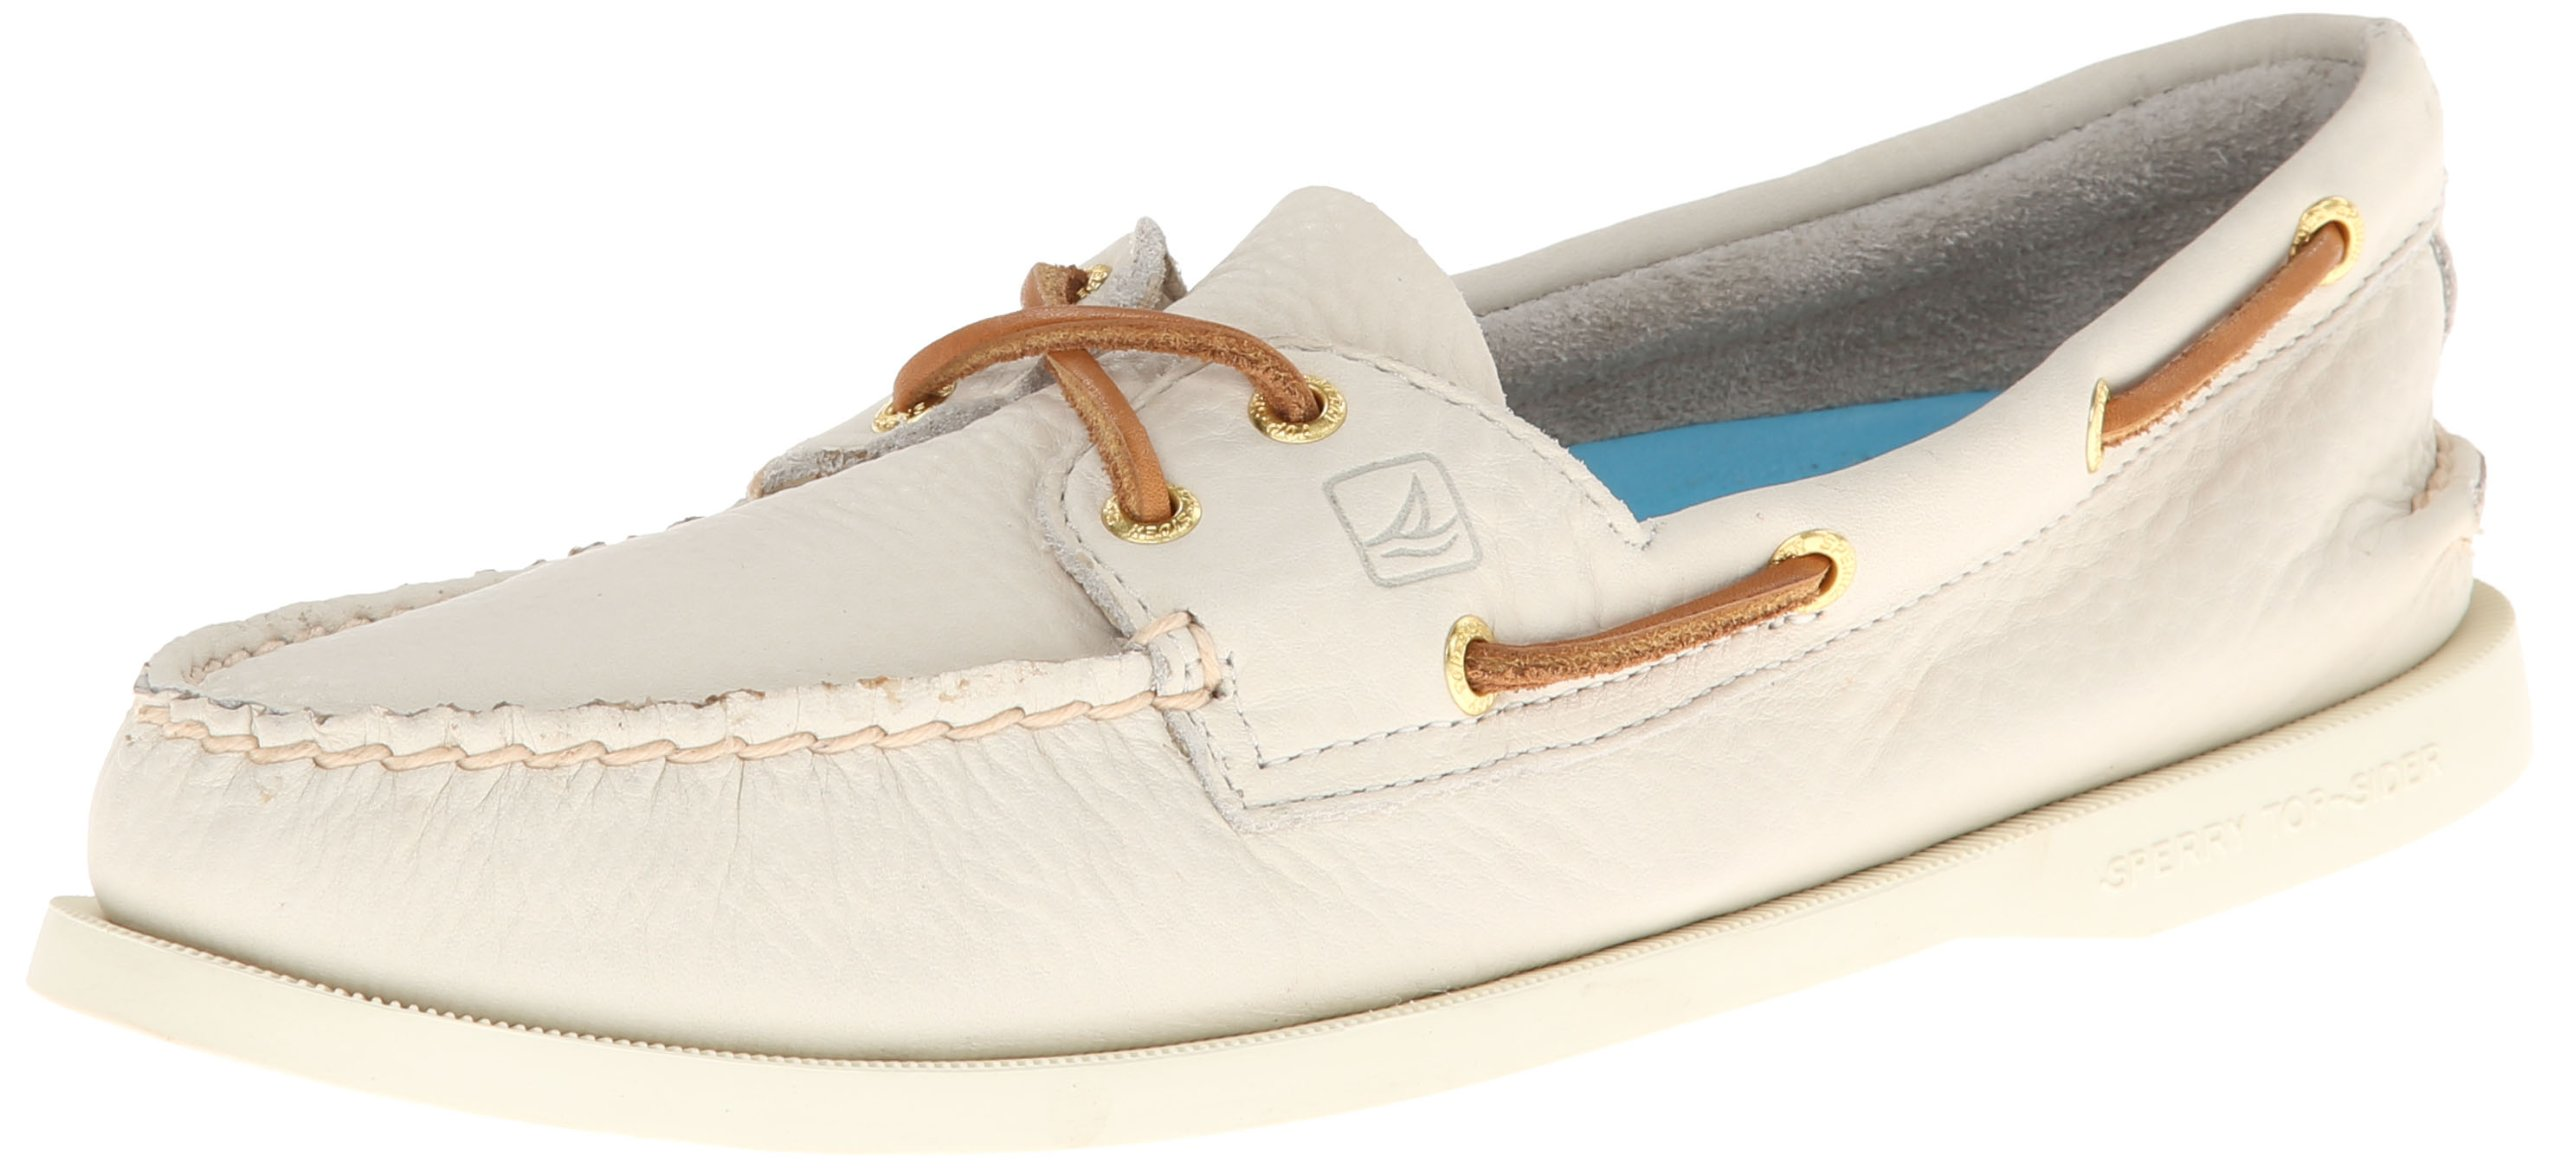 Sperry Top-Sider Women's Authentic Original Boat Shoe, Ivory, 6 M US